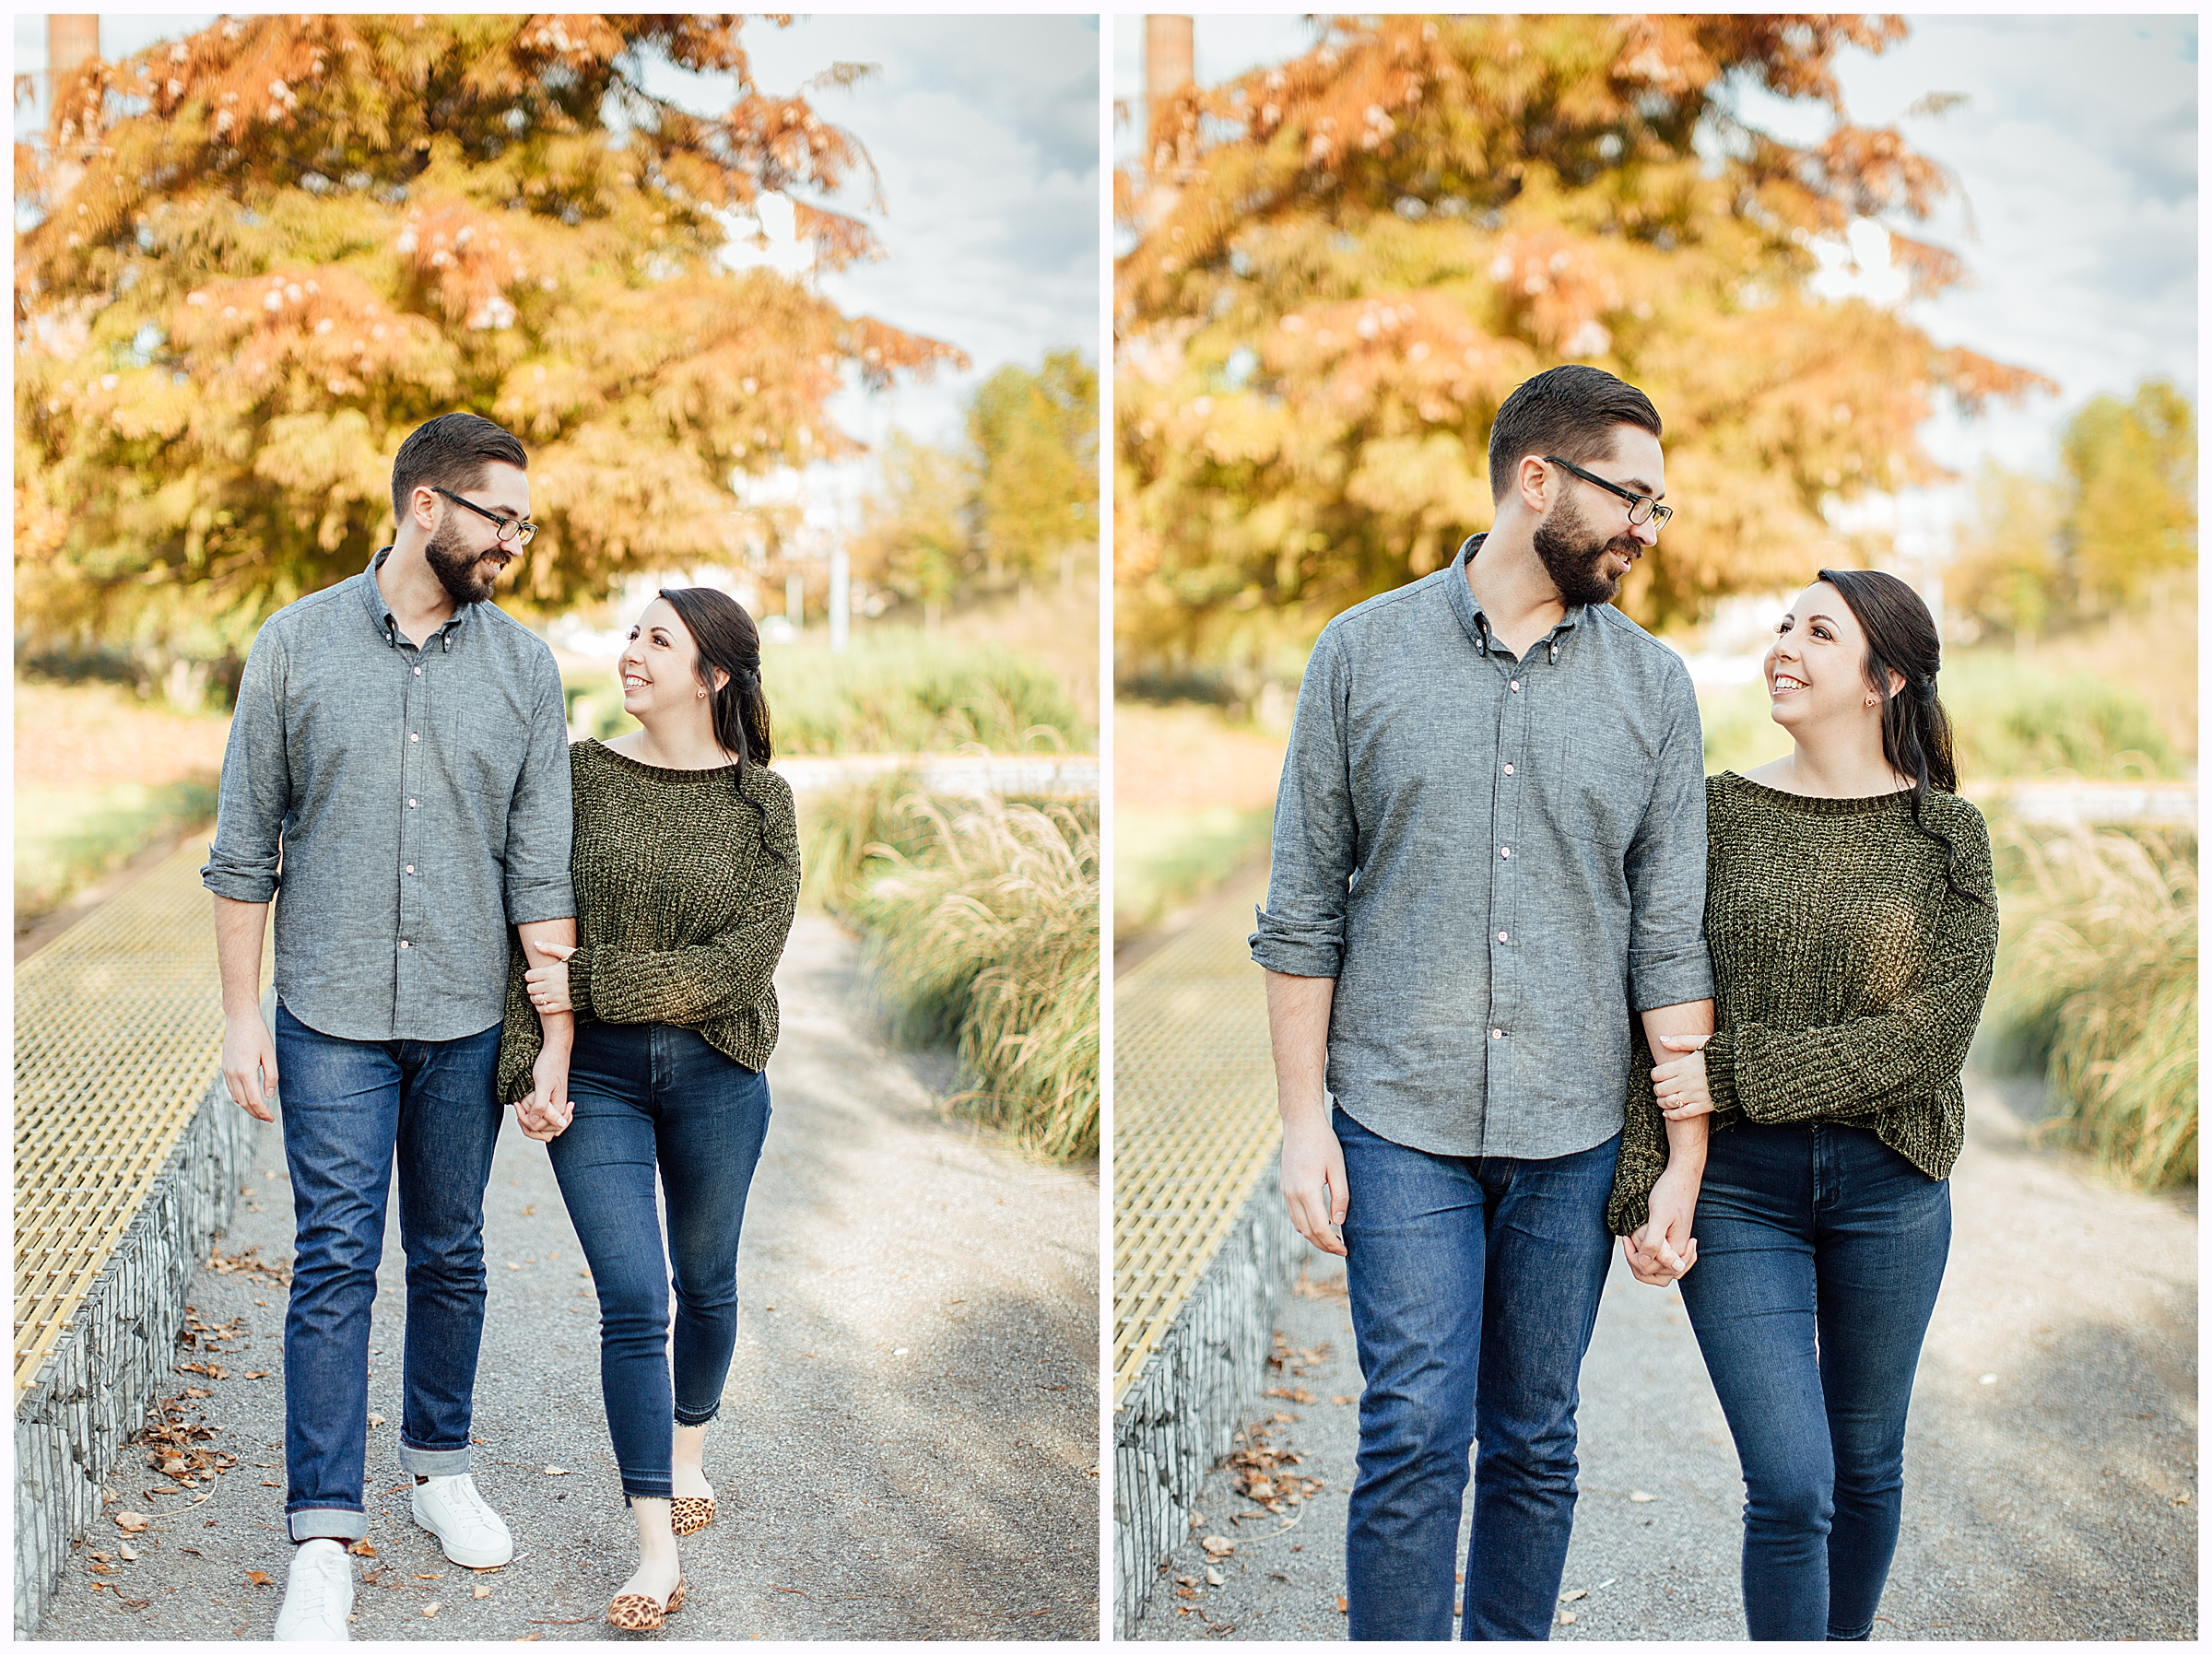 lindsey ann photography, railroad park engagement session, birmingham wedding photographer, downtown engagement session, birmingham engagement session, alabama weddings